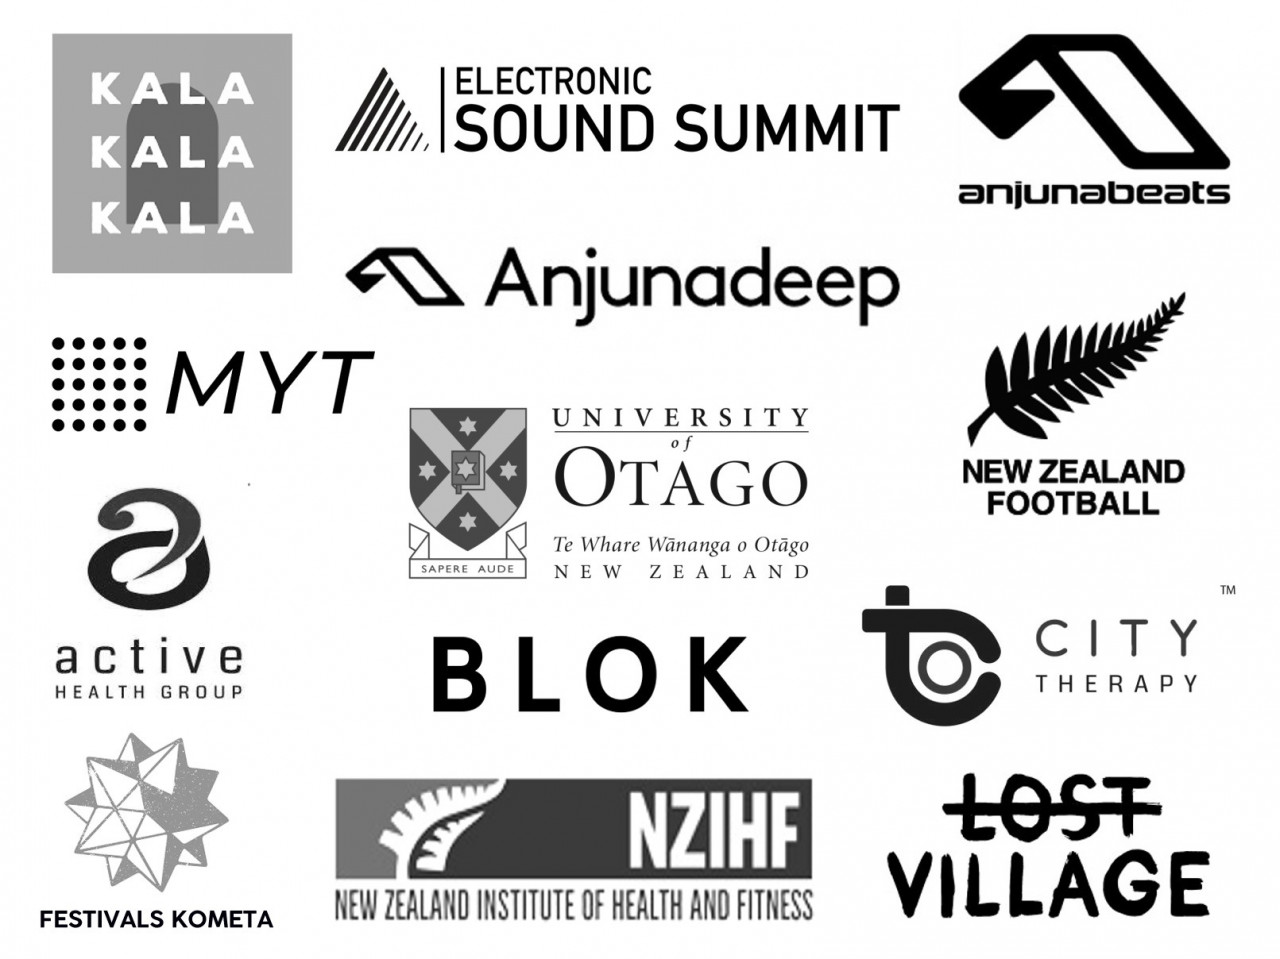 logos of different companies